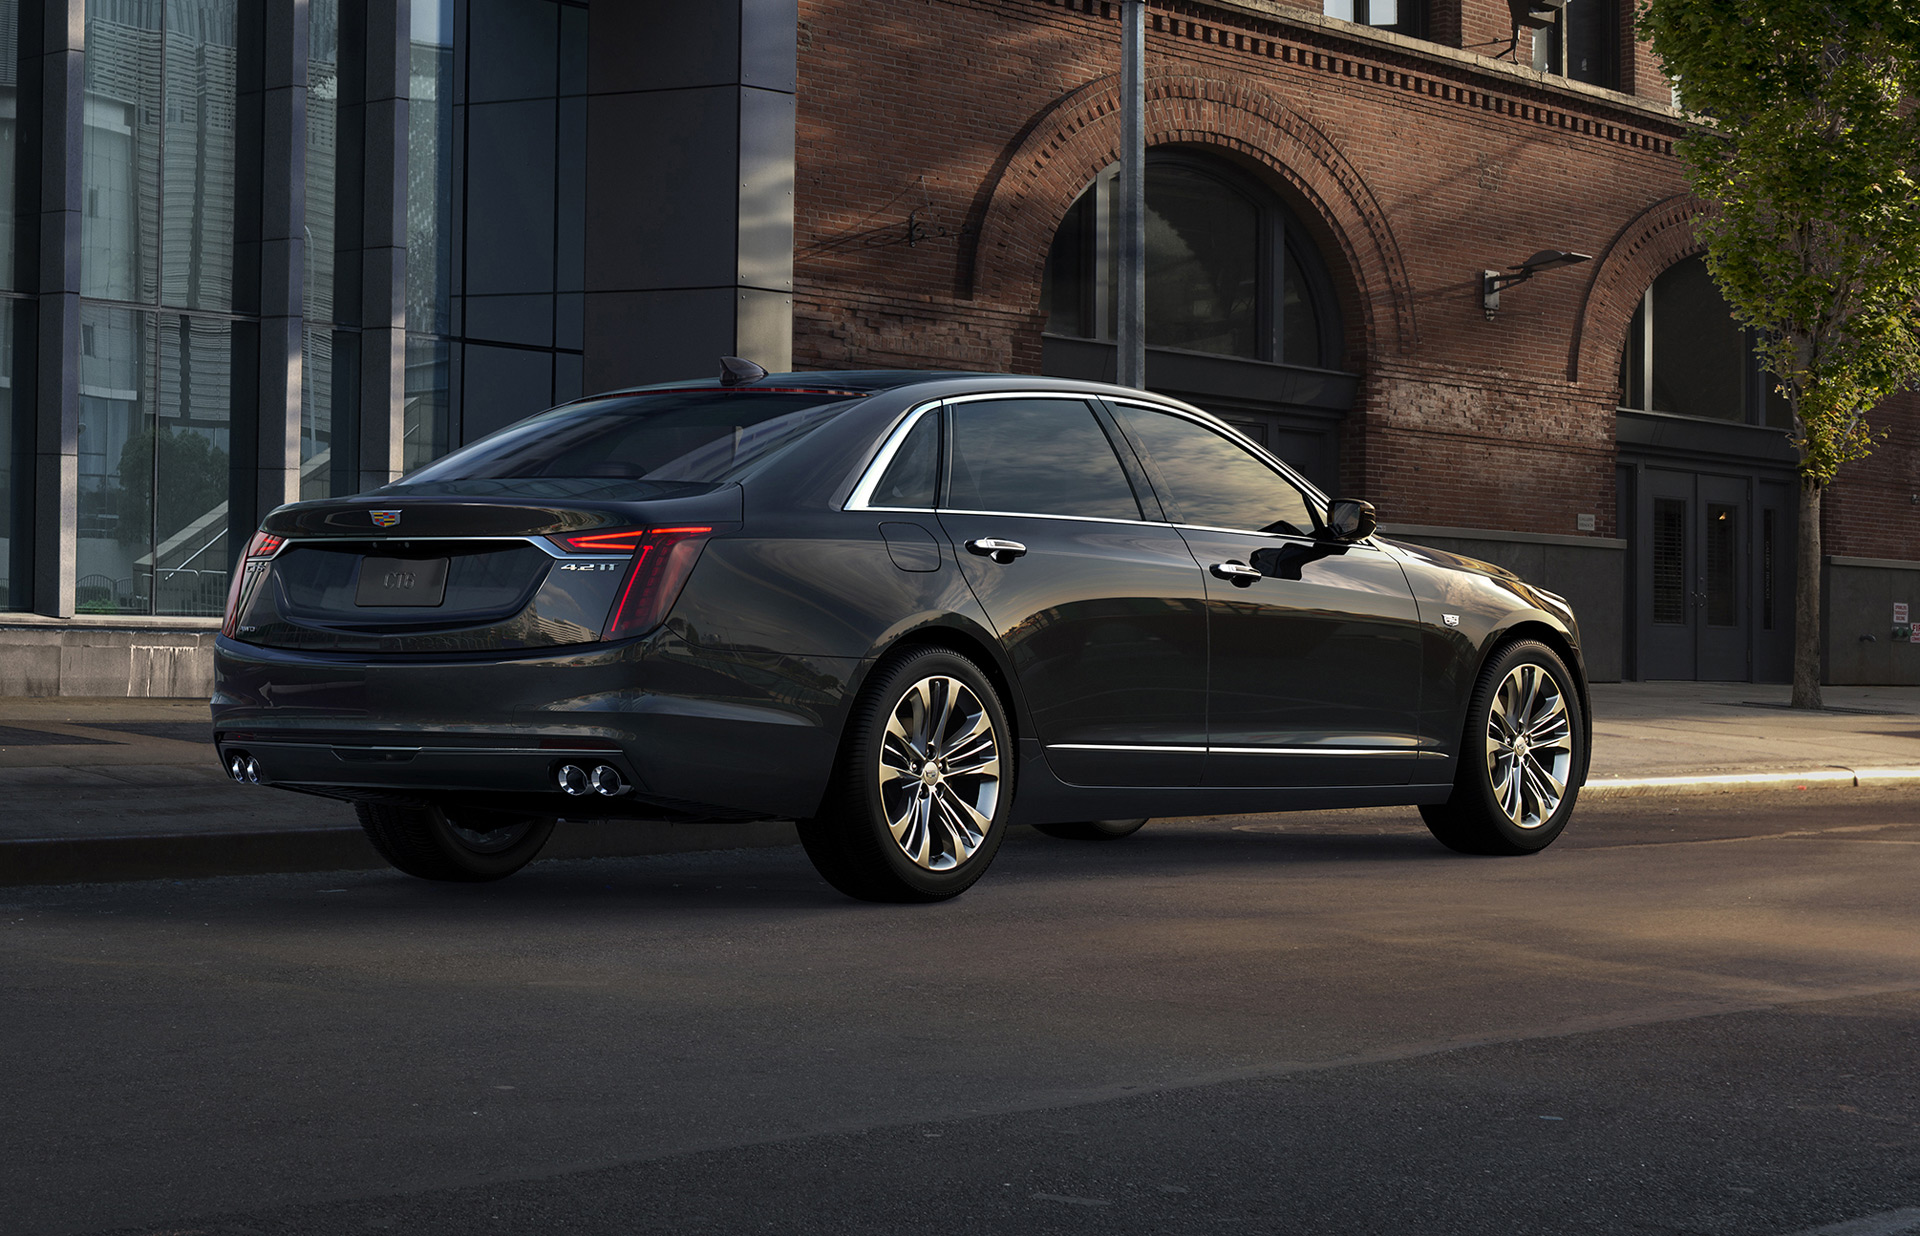 65 The Best 2020 Cadillac CT6 Configurations